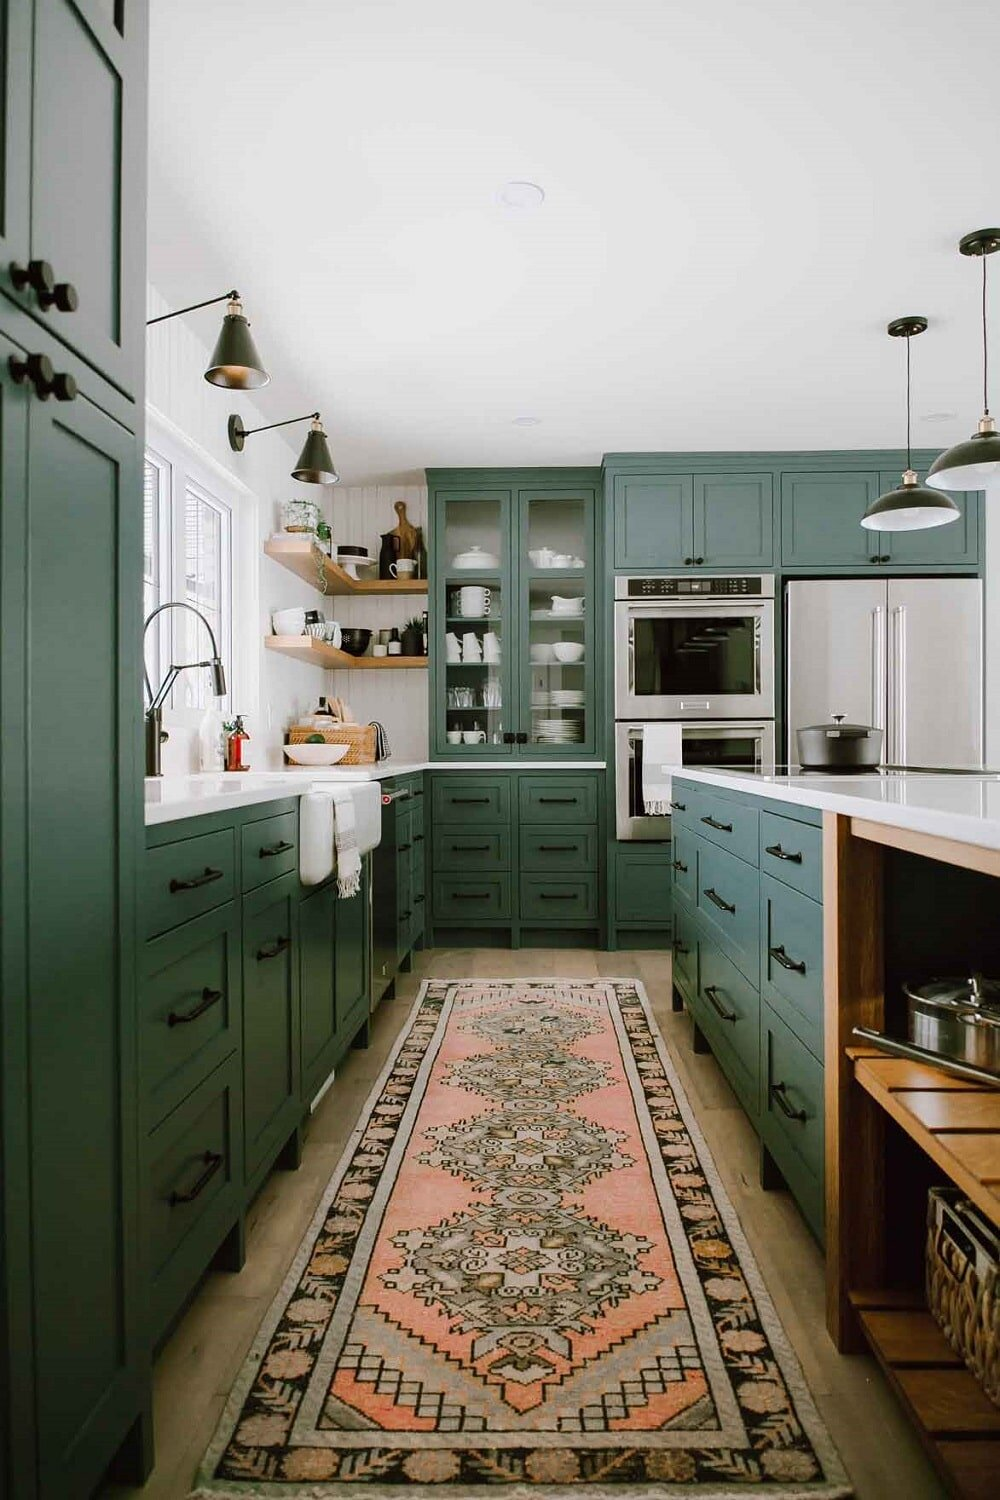 Green kitchen design ideas — THE NORDROOM